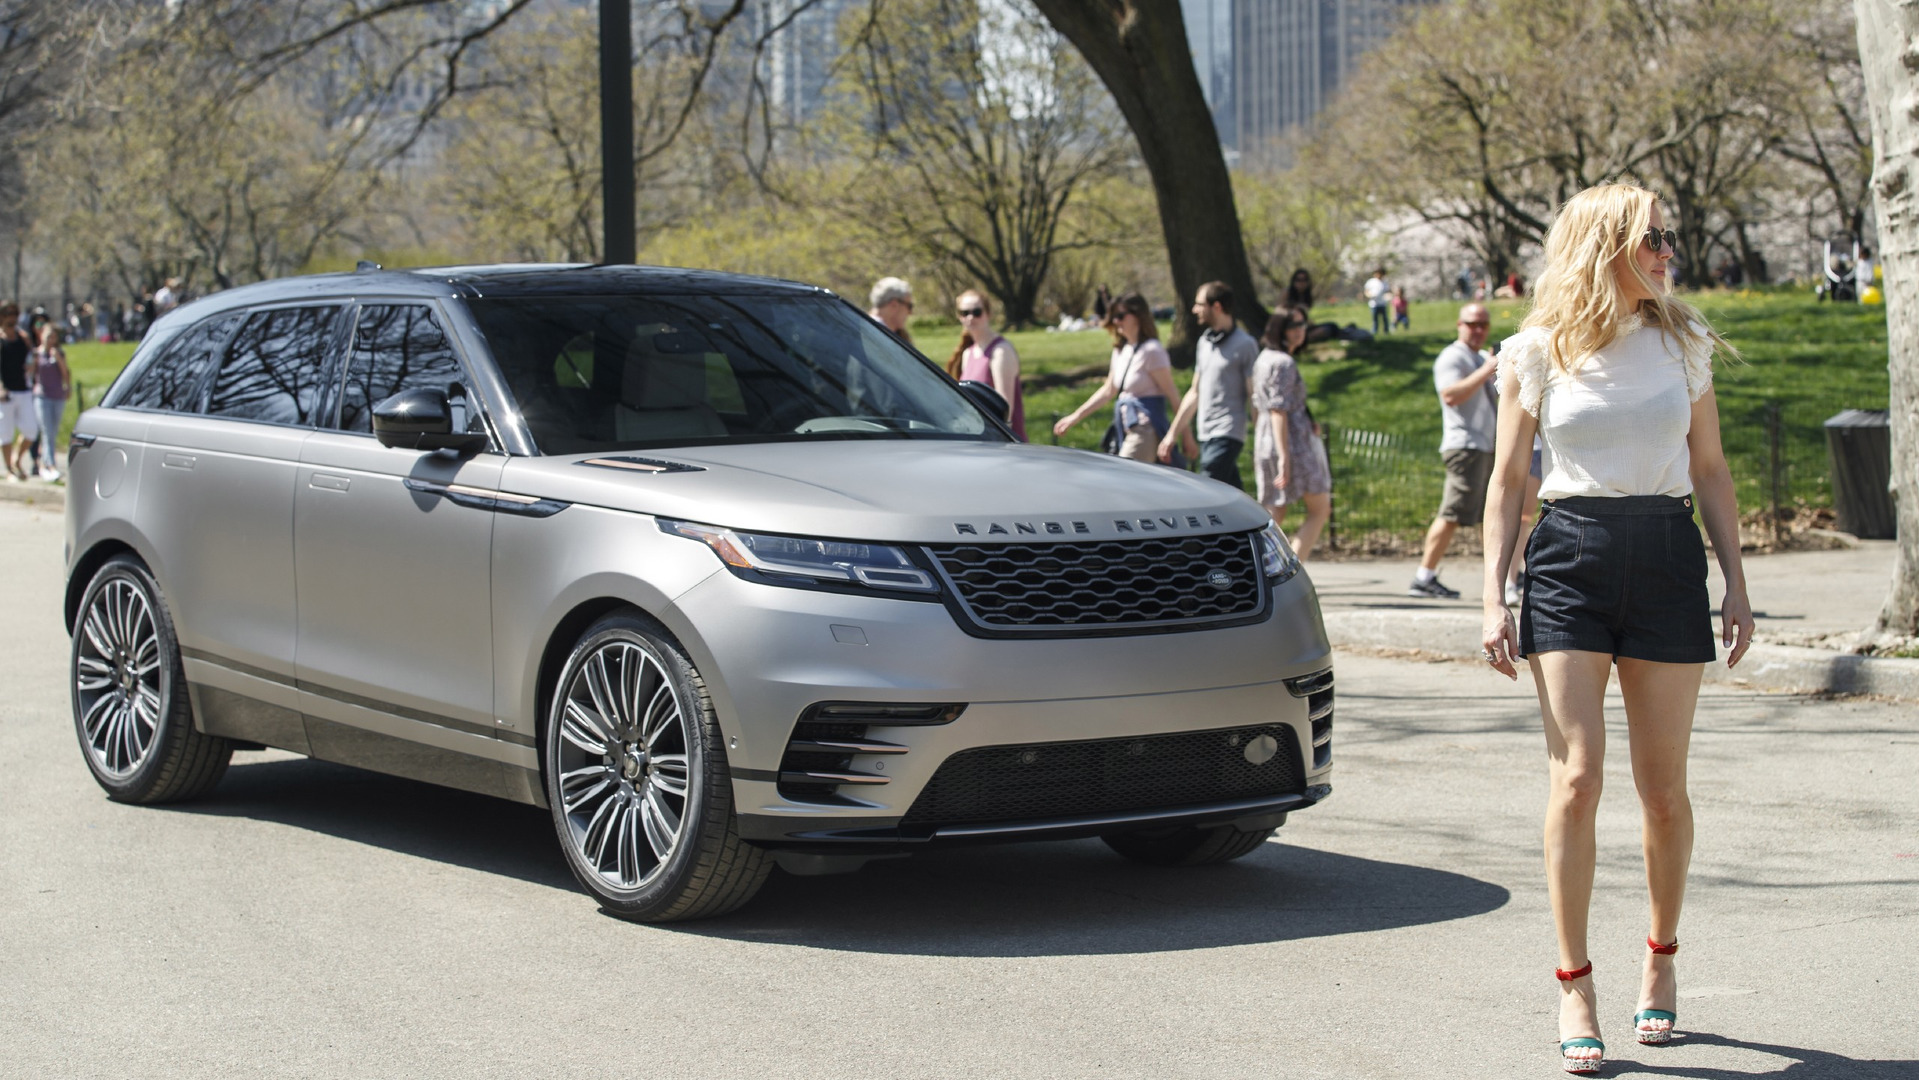 Range Rover Velar Makes U.S. Debut With Help From Ellie